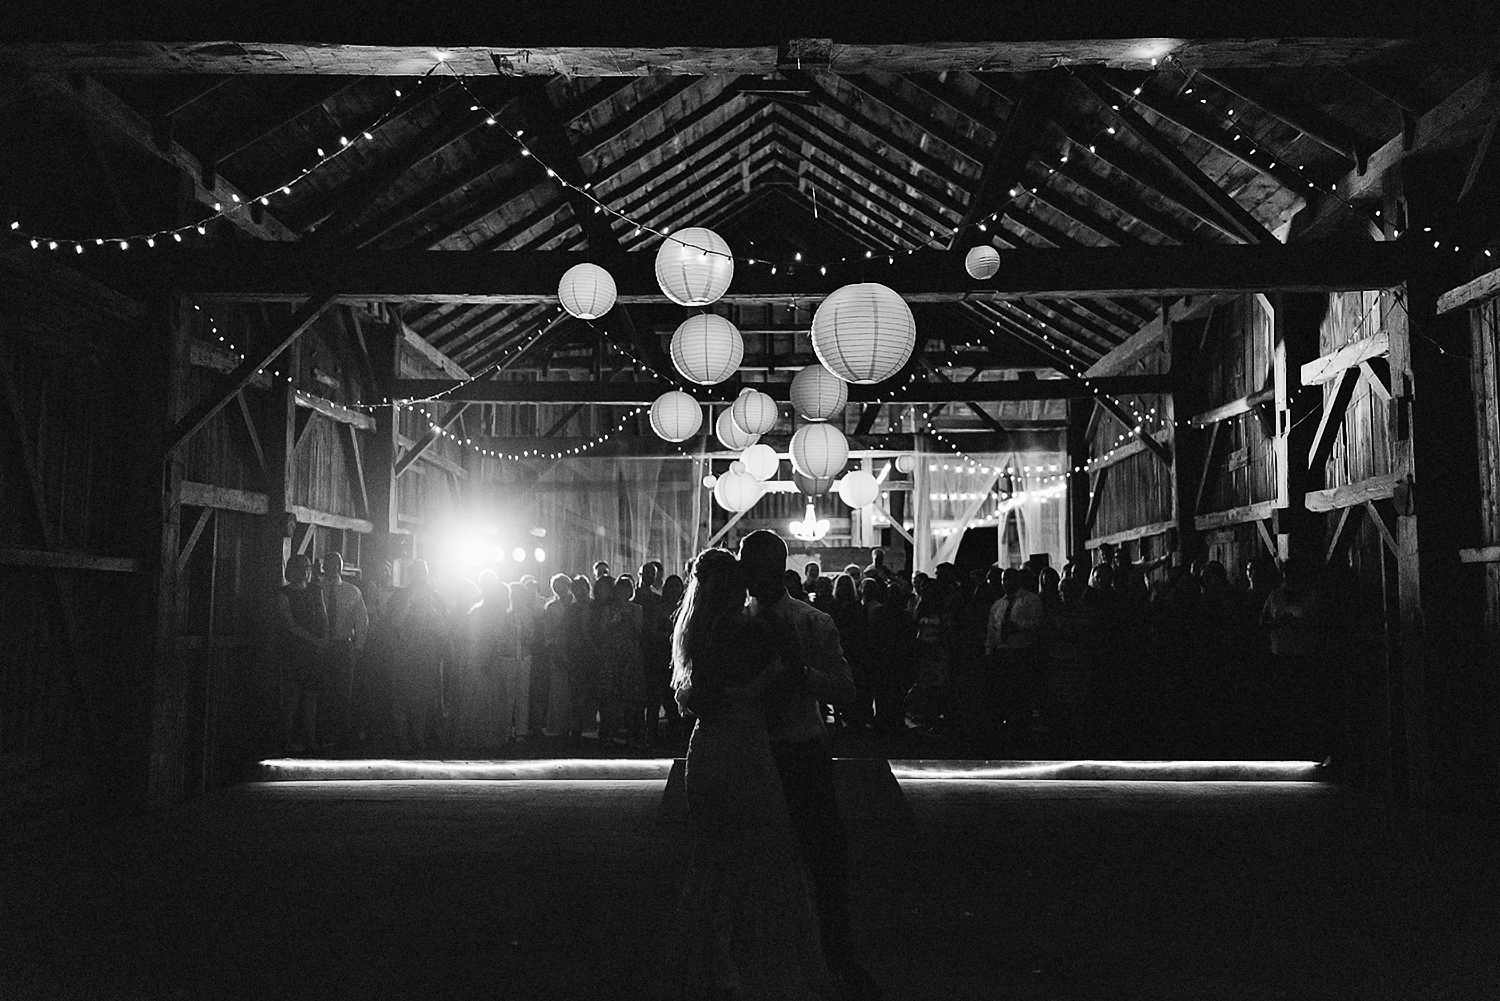 Best-Wedding-Photographers-Toronto-with-Documentary-and-photojournalistic-style-3b-Photography-Intimate-Wedding-at-Dowswell-Barn-Wedding-Photography-bride-and-groom-dancing-together-candid-emotions-moody.jpg